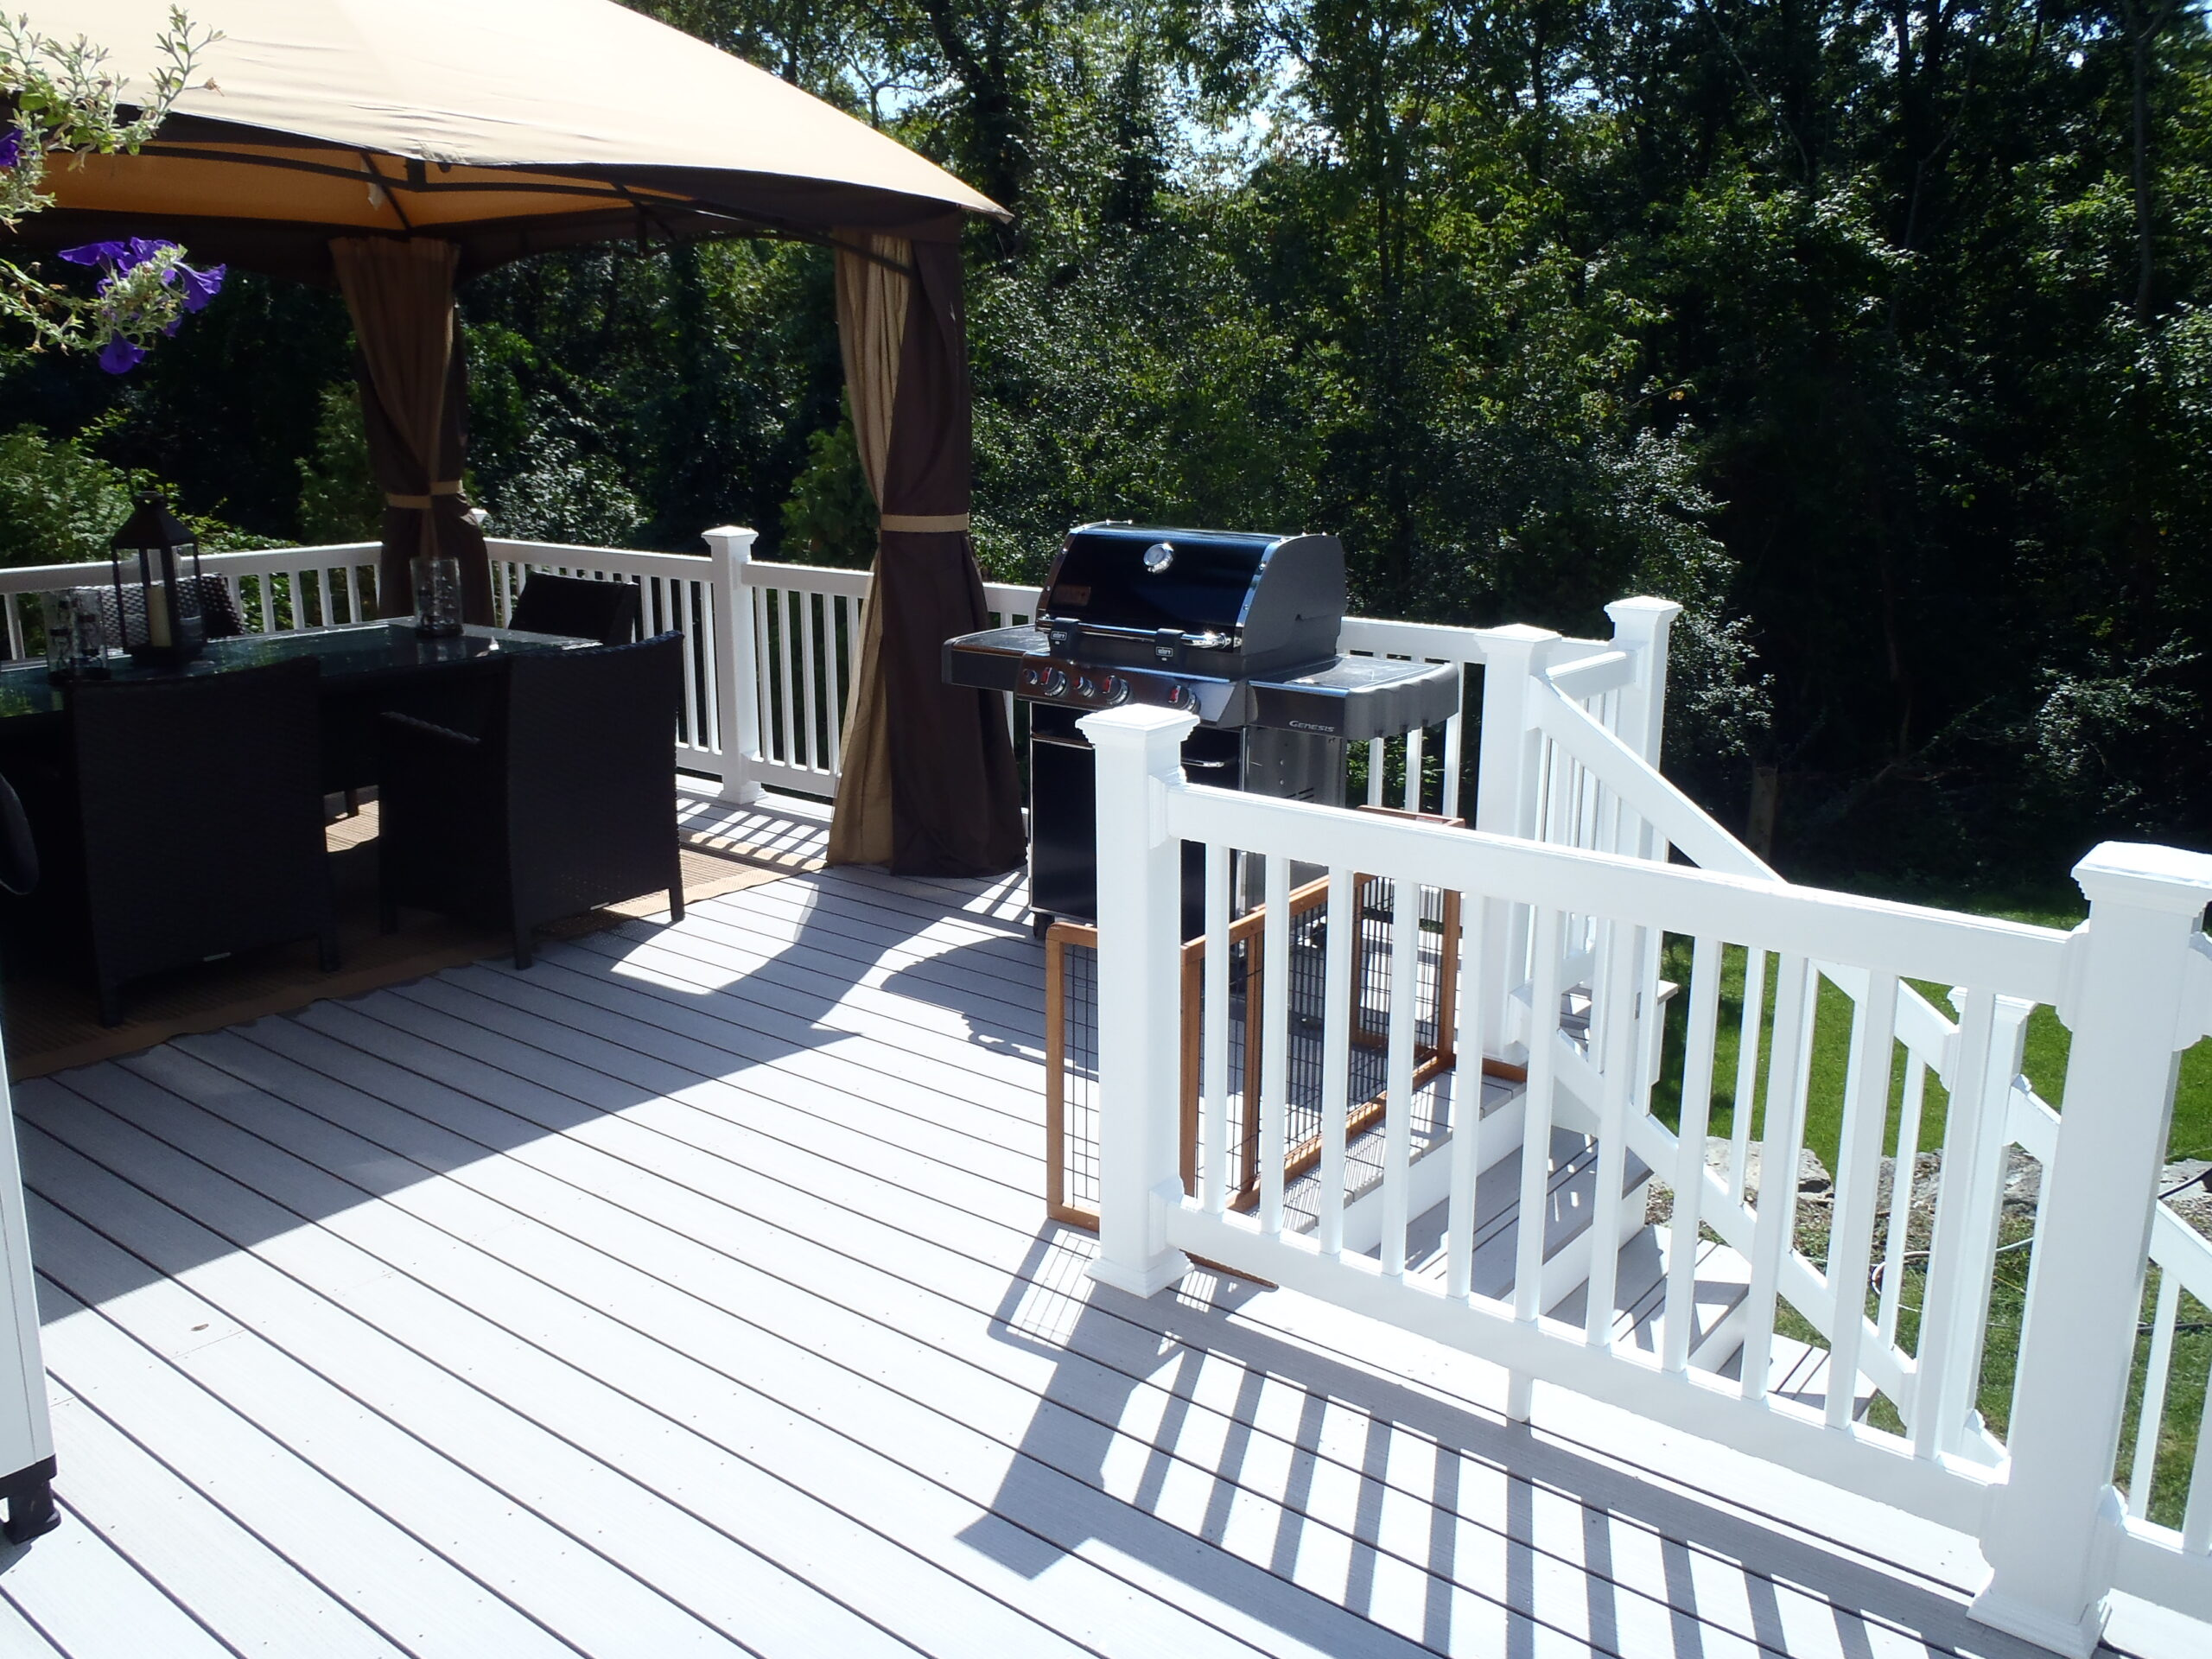 Builders and new Deck Construction